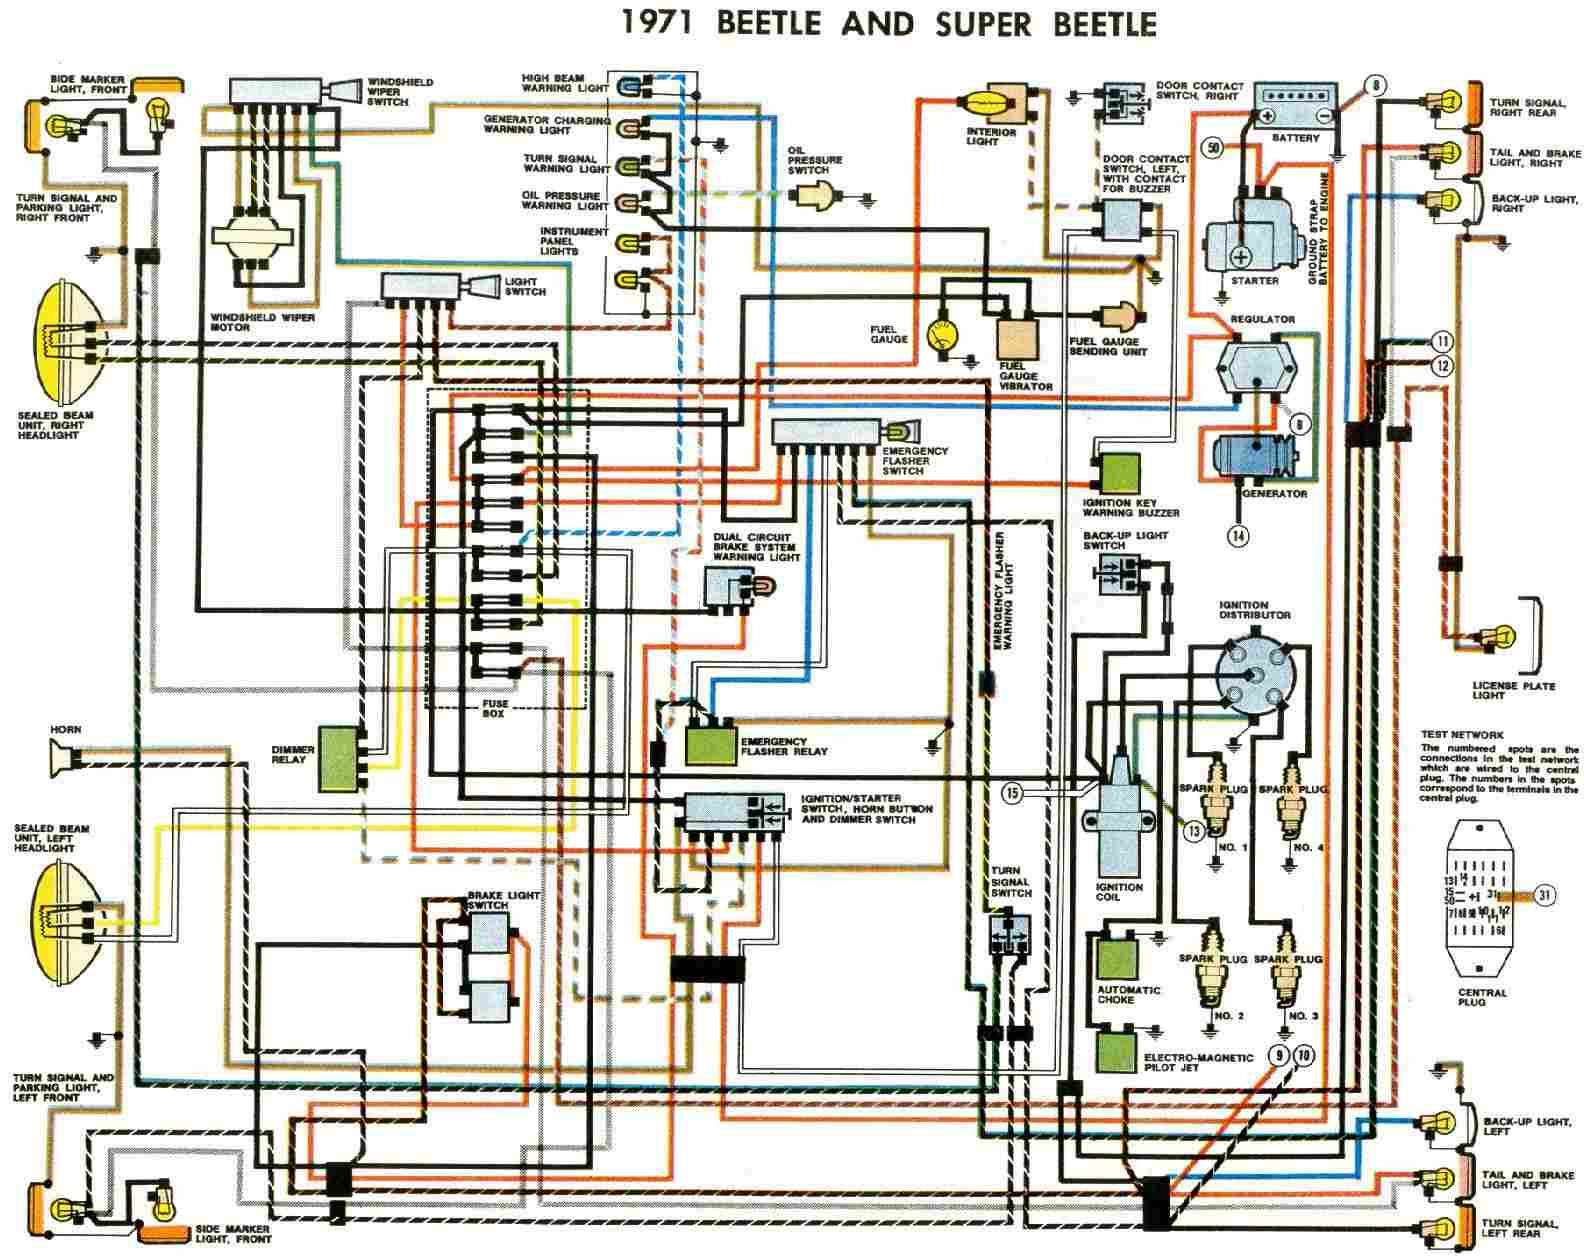 1999 Ford Truck Fuse Box Diagram Wiring Library 1971 Chevy Free Auto Vw Beetle And Super